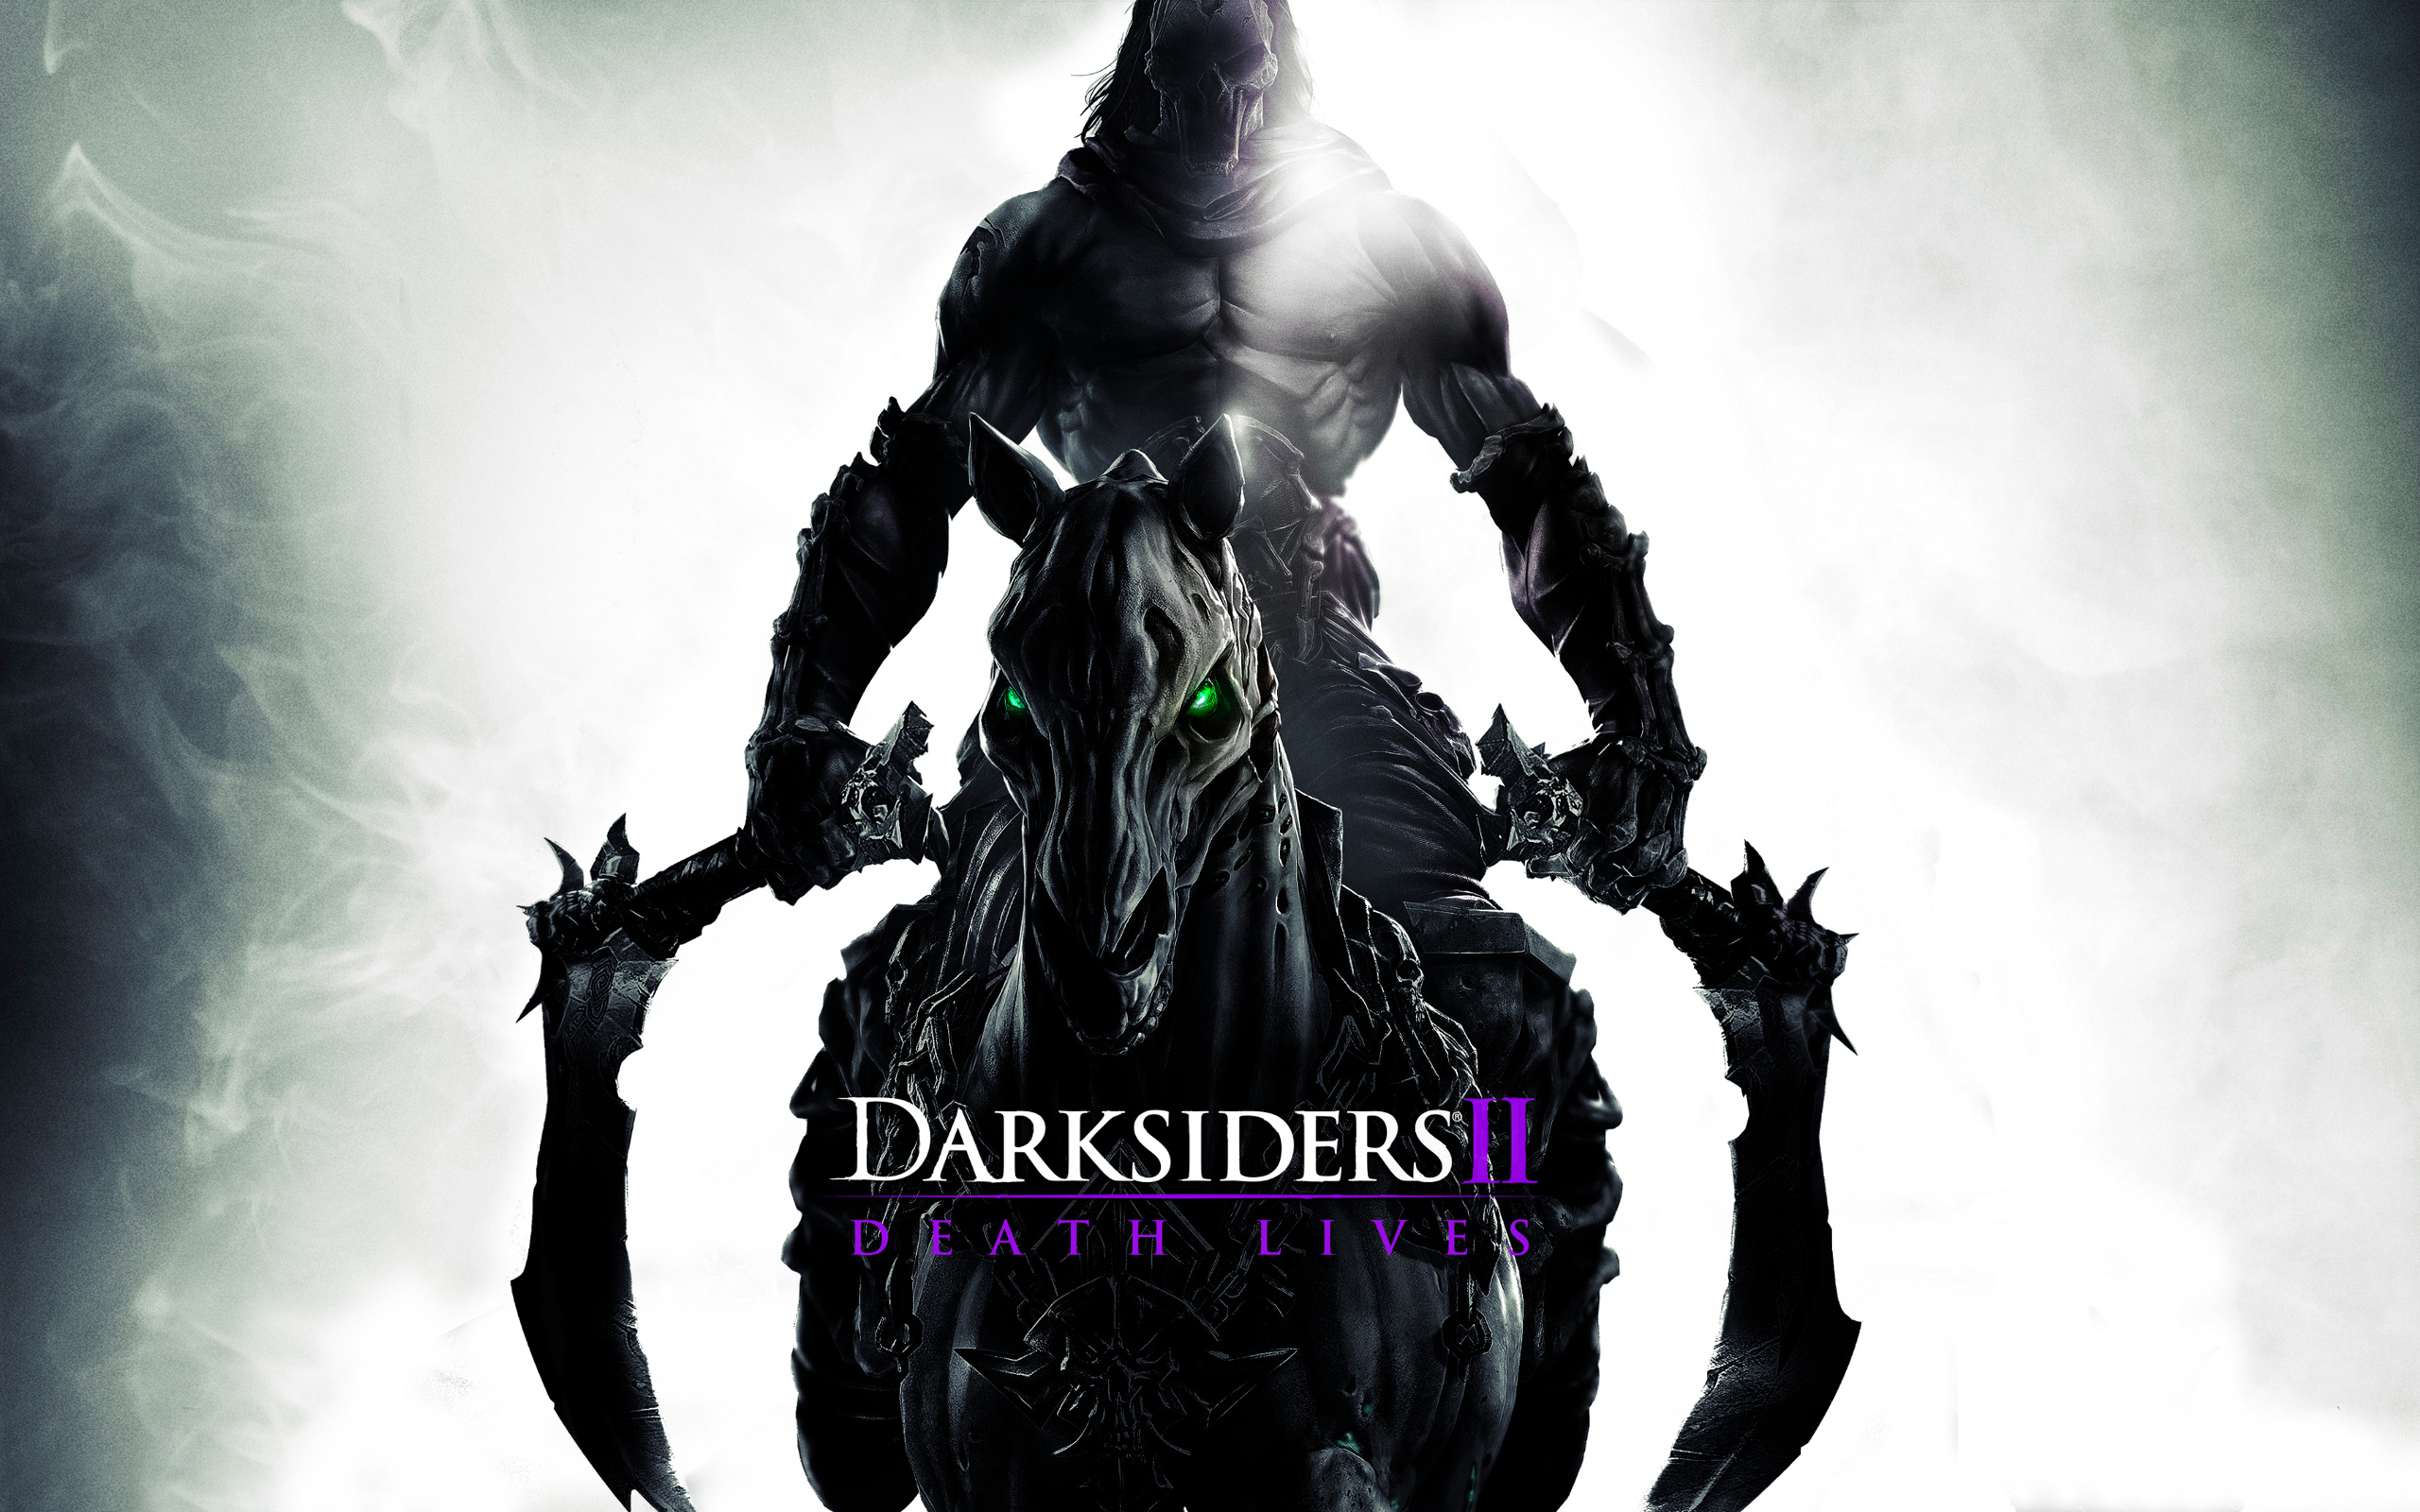 Horseman in Darksiders 2 wallpaper